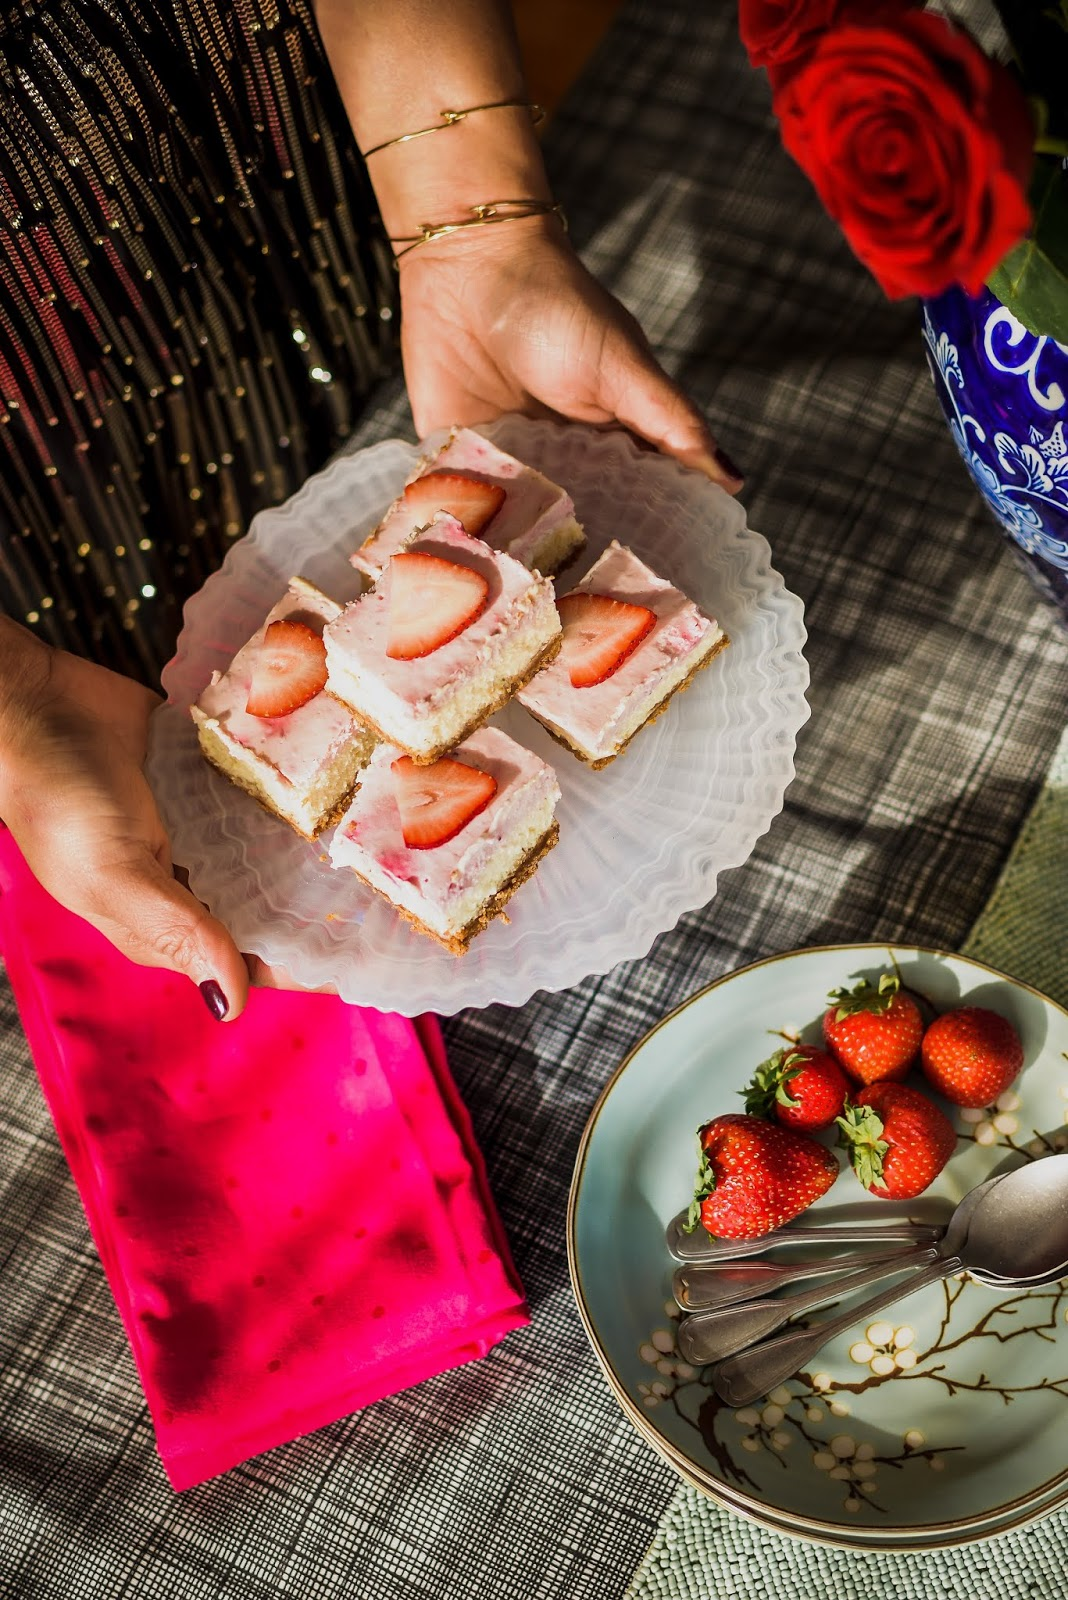 strawberry cheesecake bars, dessert, saumya shiohare, myriad musings .jpg